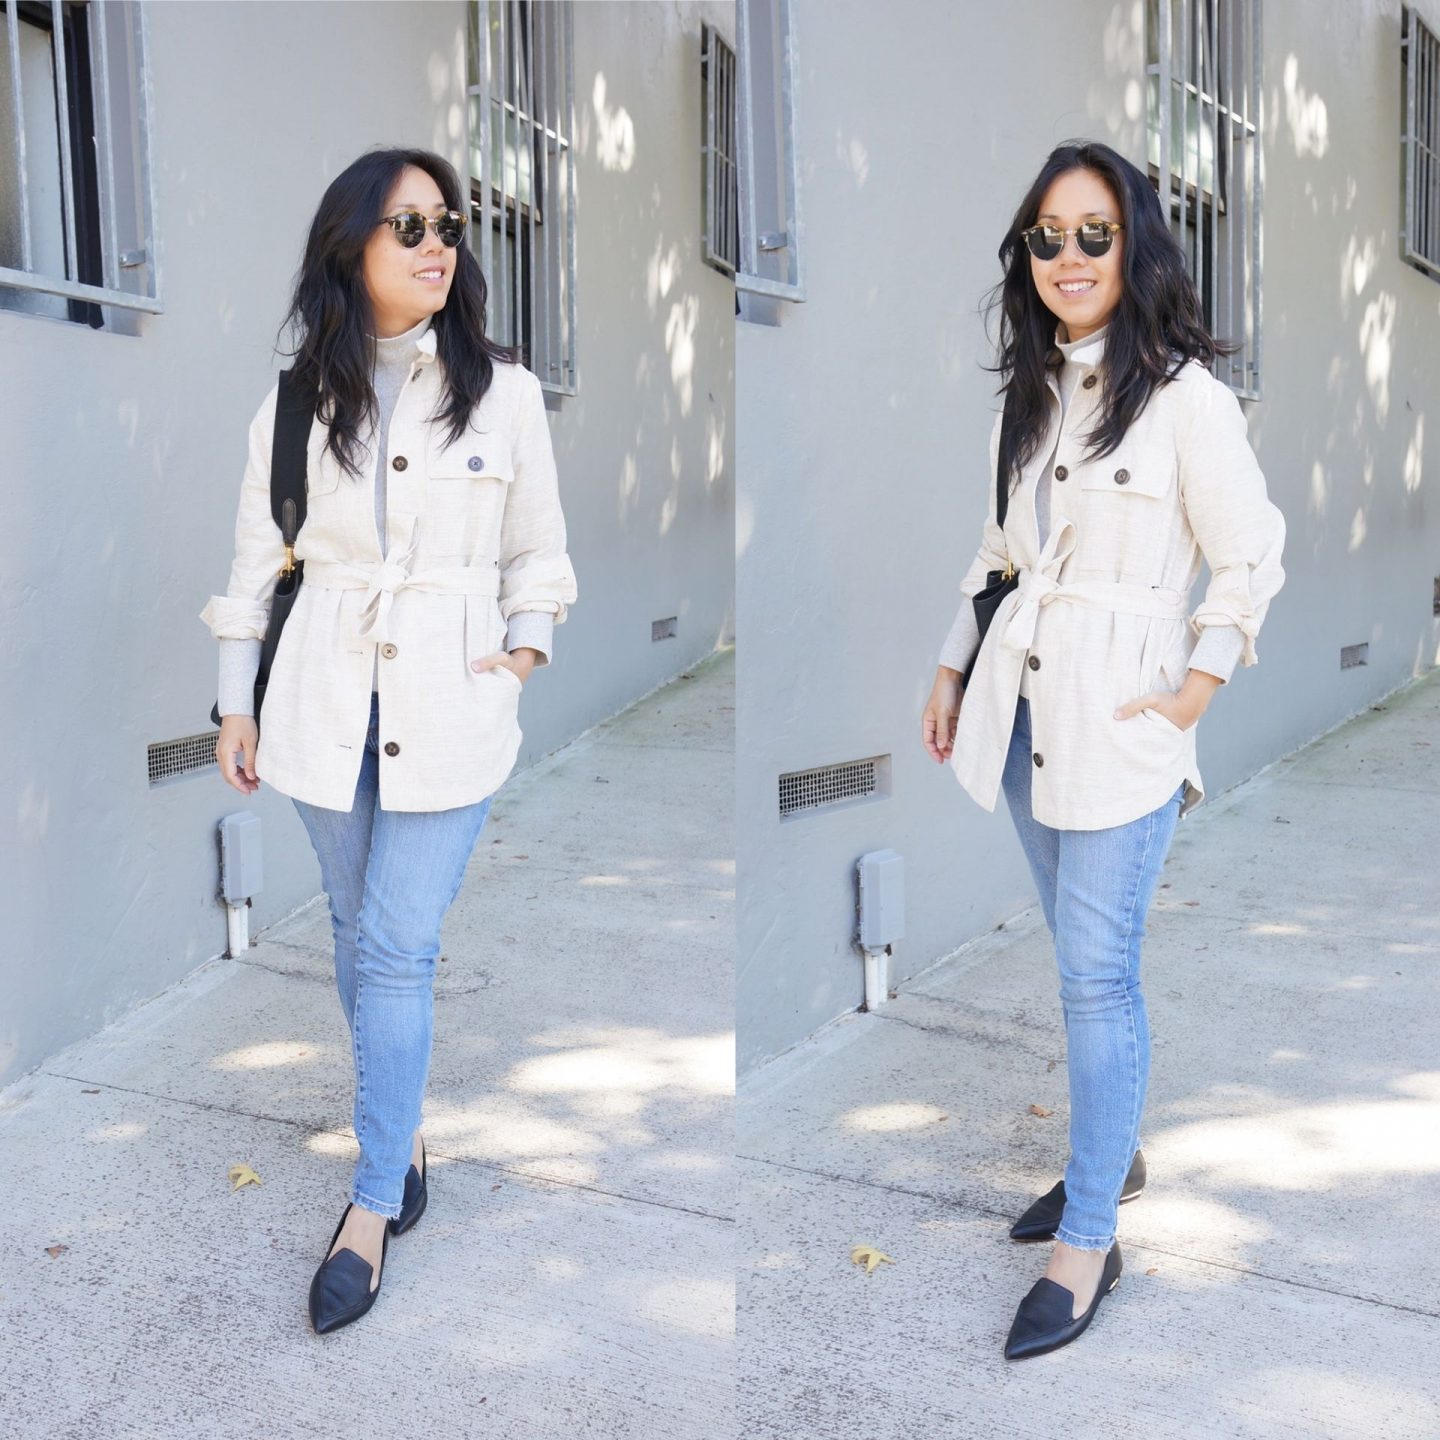 asian workwear blogger wearing shacket from marks & spencer sale in blog post rounding up M&S favourites